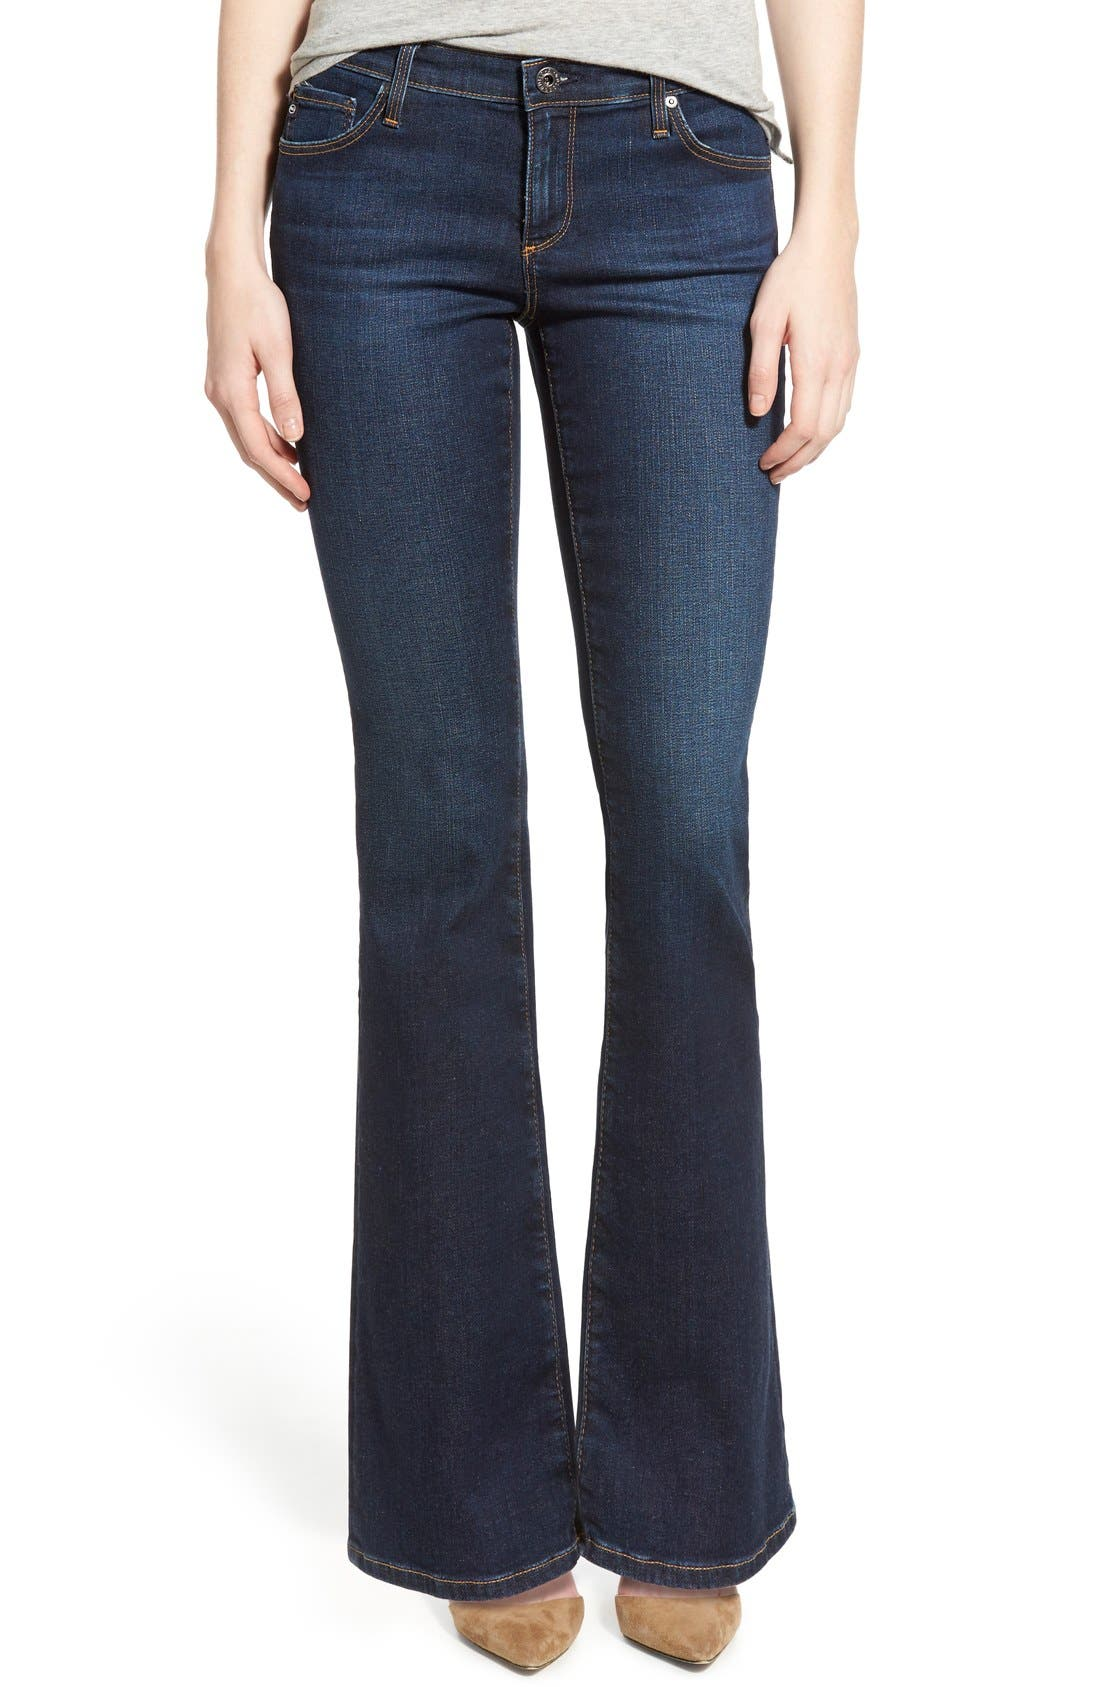 Alternate Image 1 Selected - AG 'Angelina' Bootcut Jeans (Smitten) (Petite)